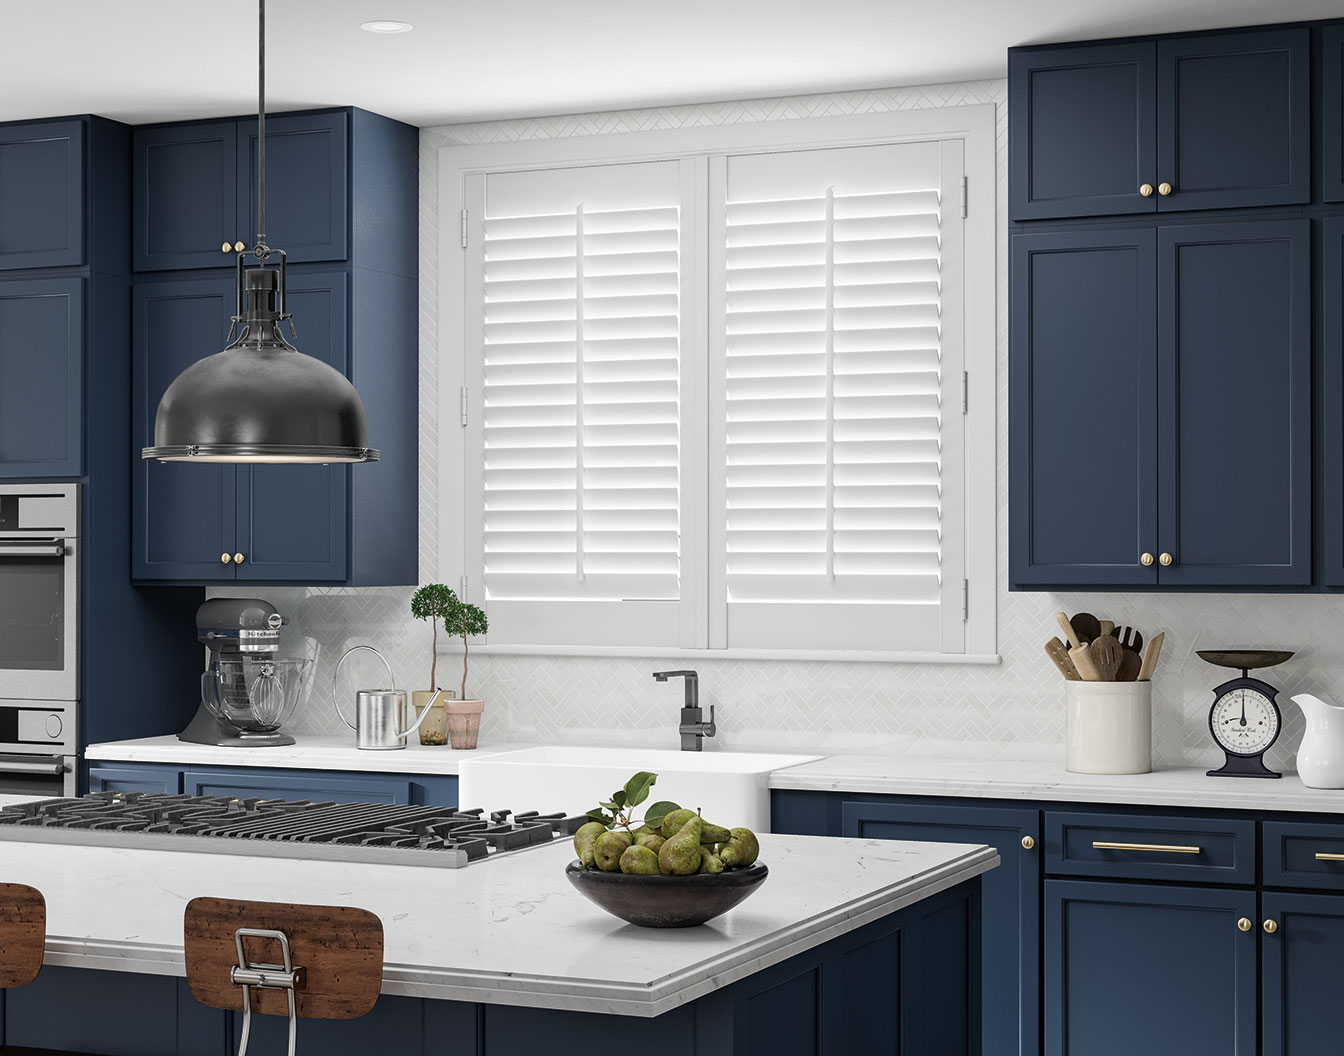 Composite shutters being shown in the kitchen